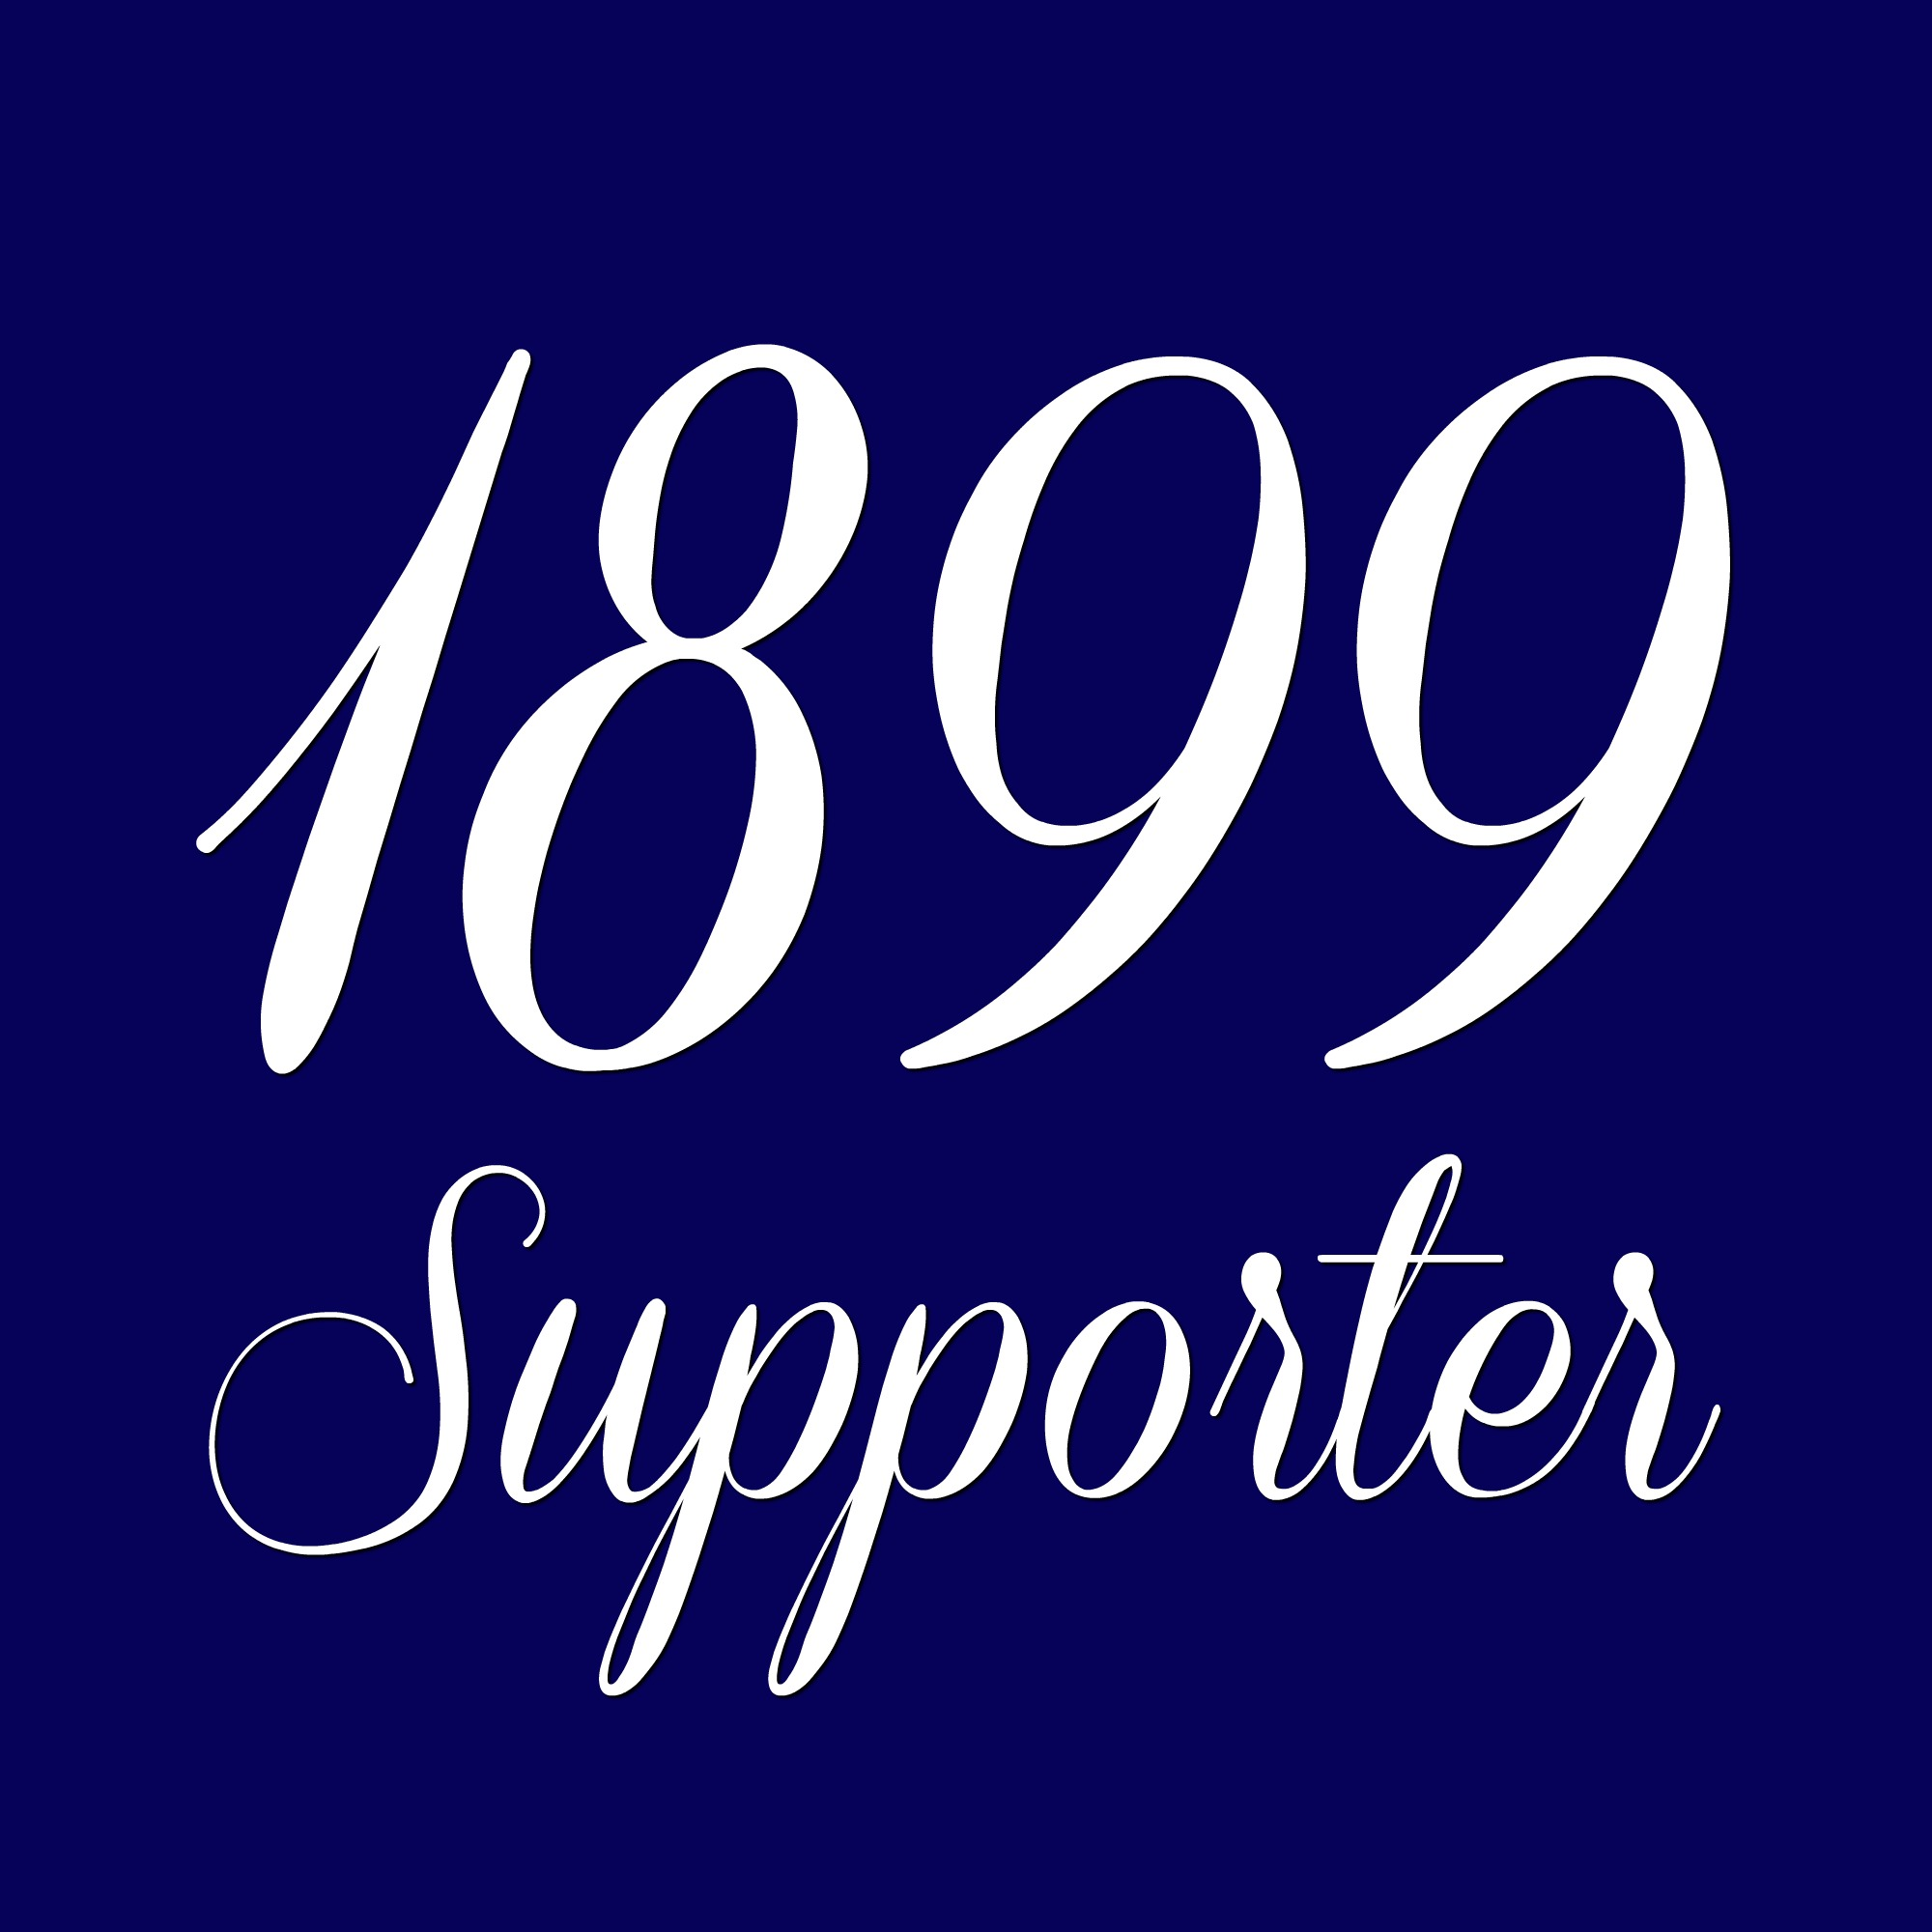 1899 Supporter